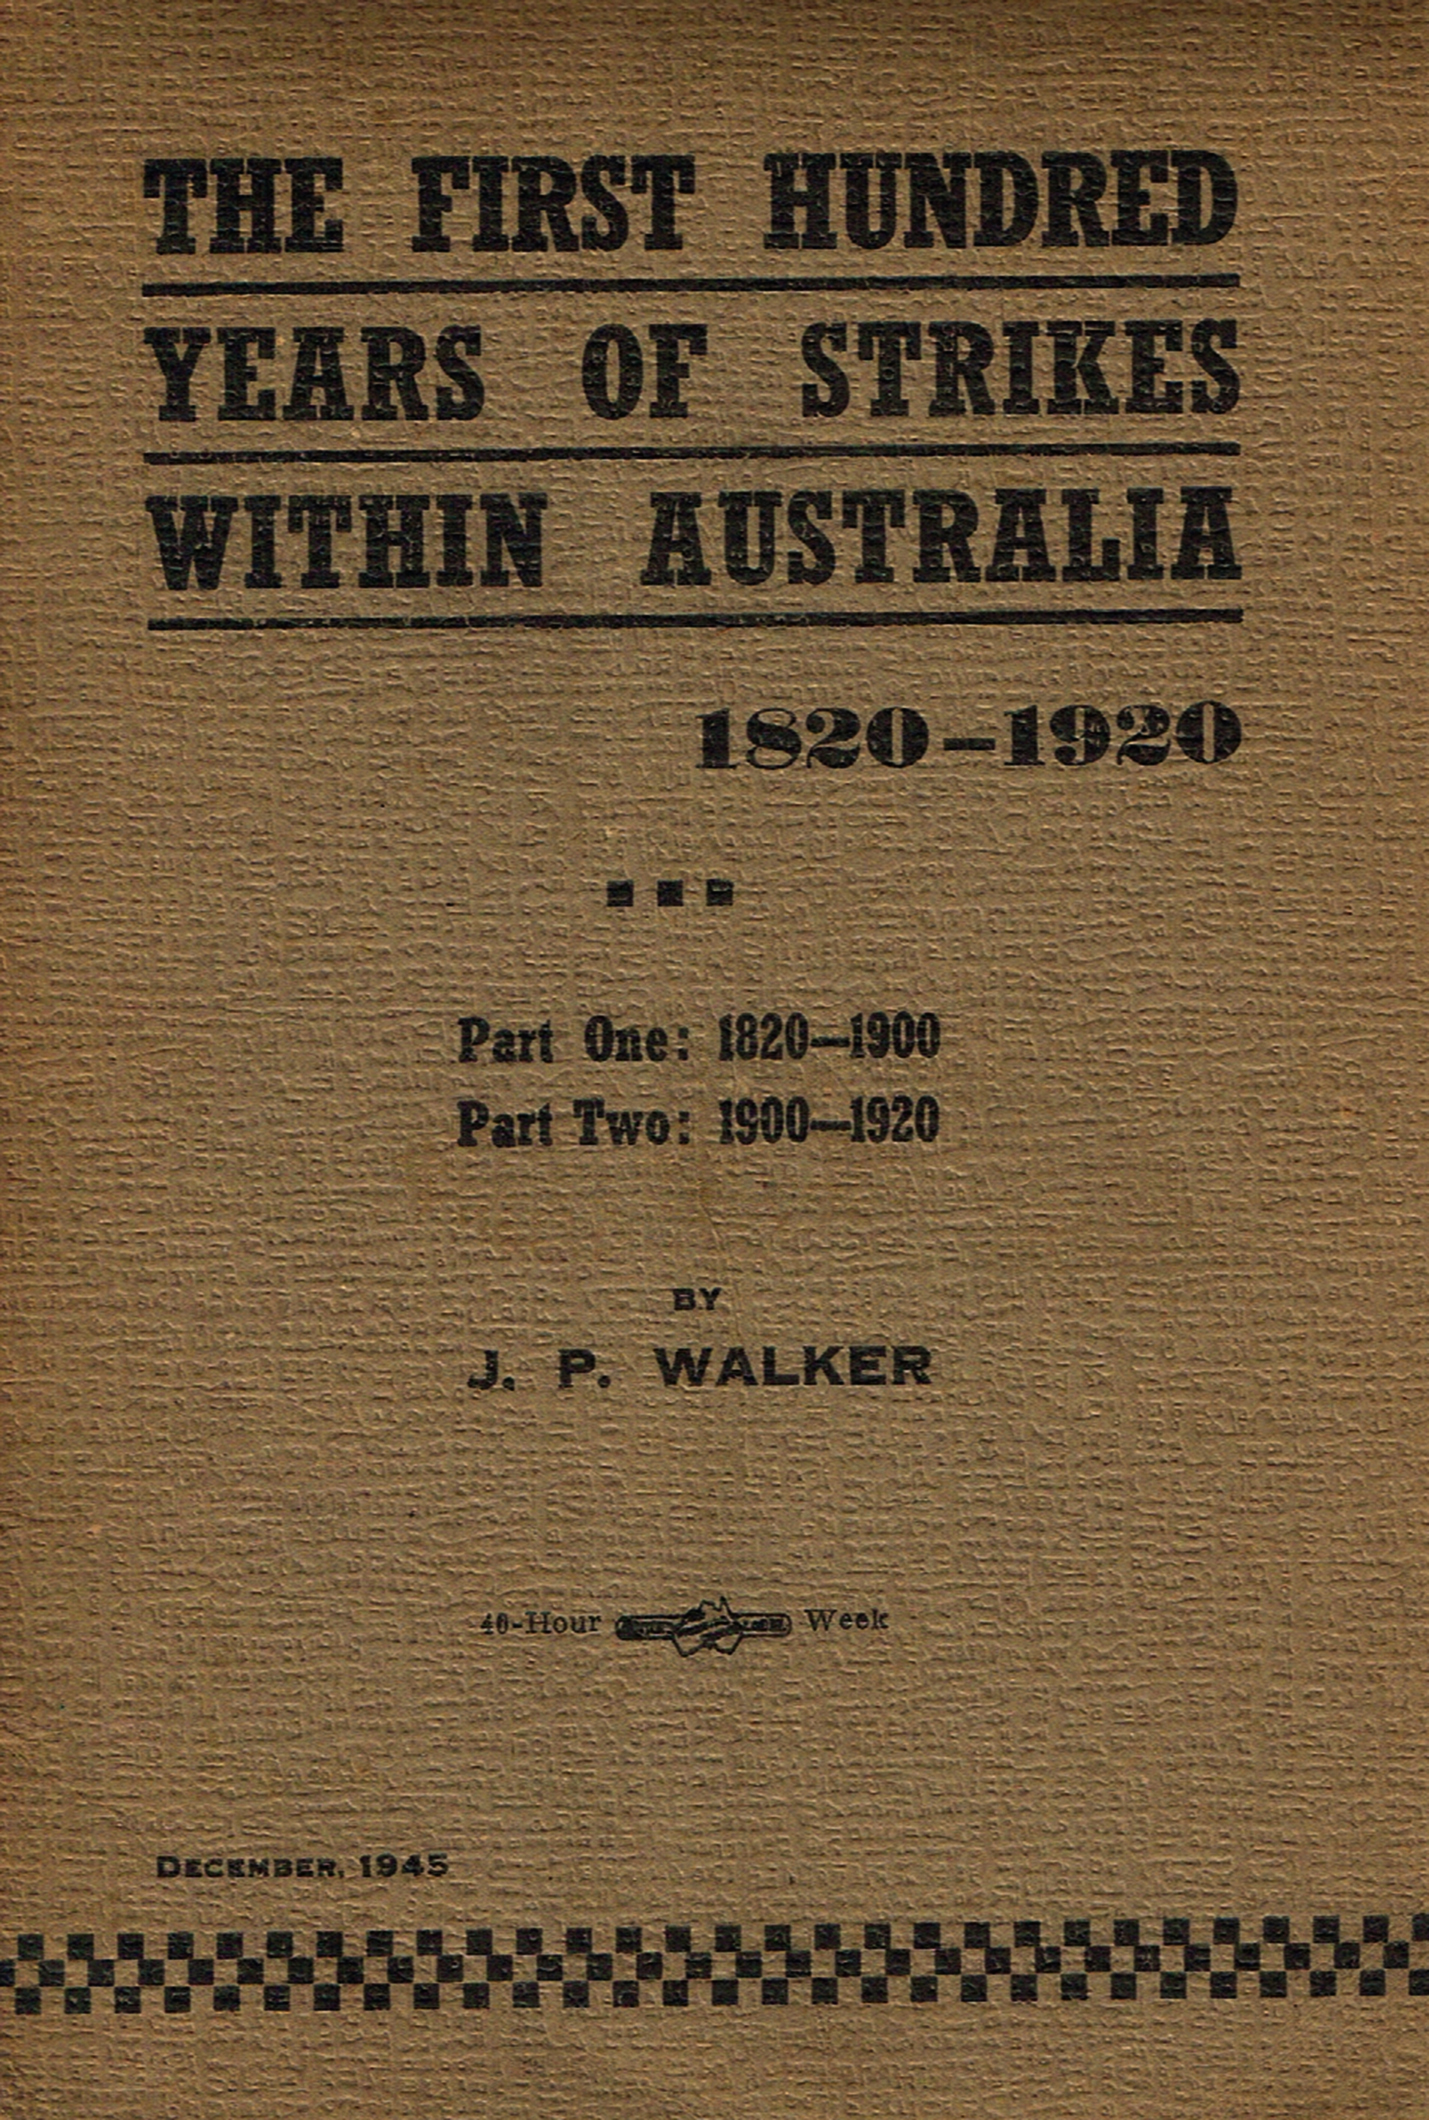 The first hundred years of strikes in Australia. 1820-1920